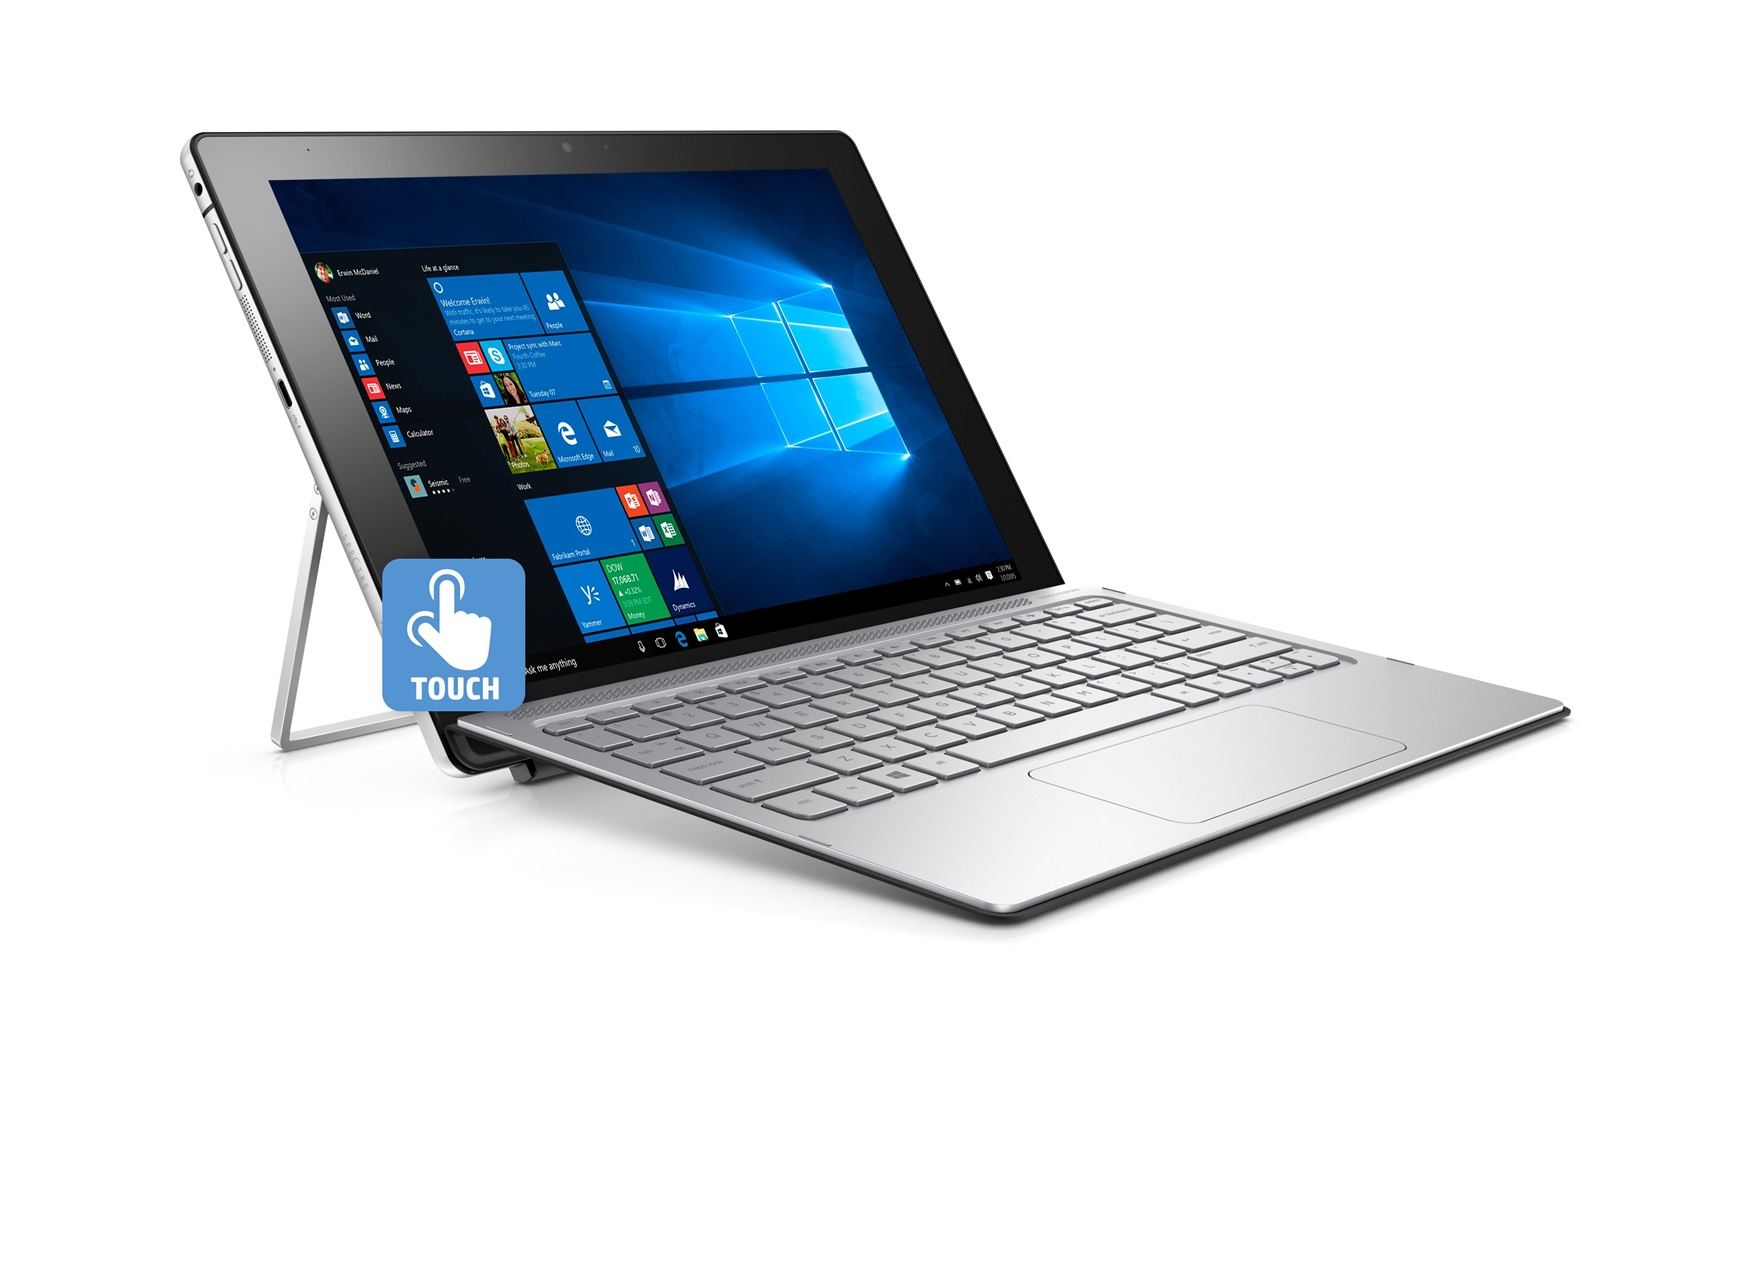 HP Spectre X2 12 A001ng Convertible Review